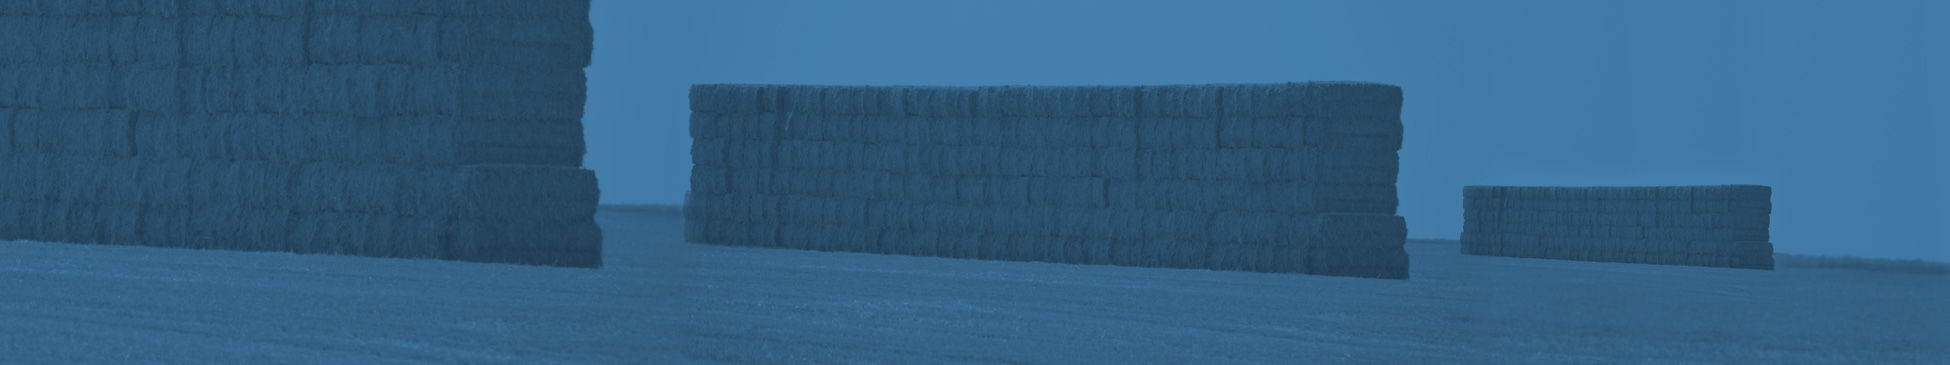 article_image